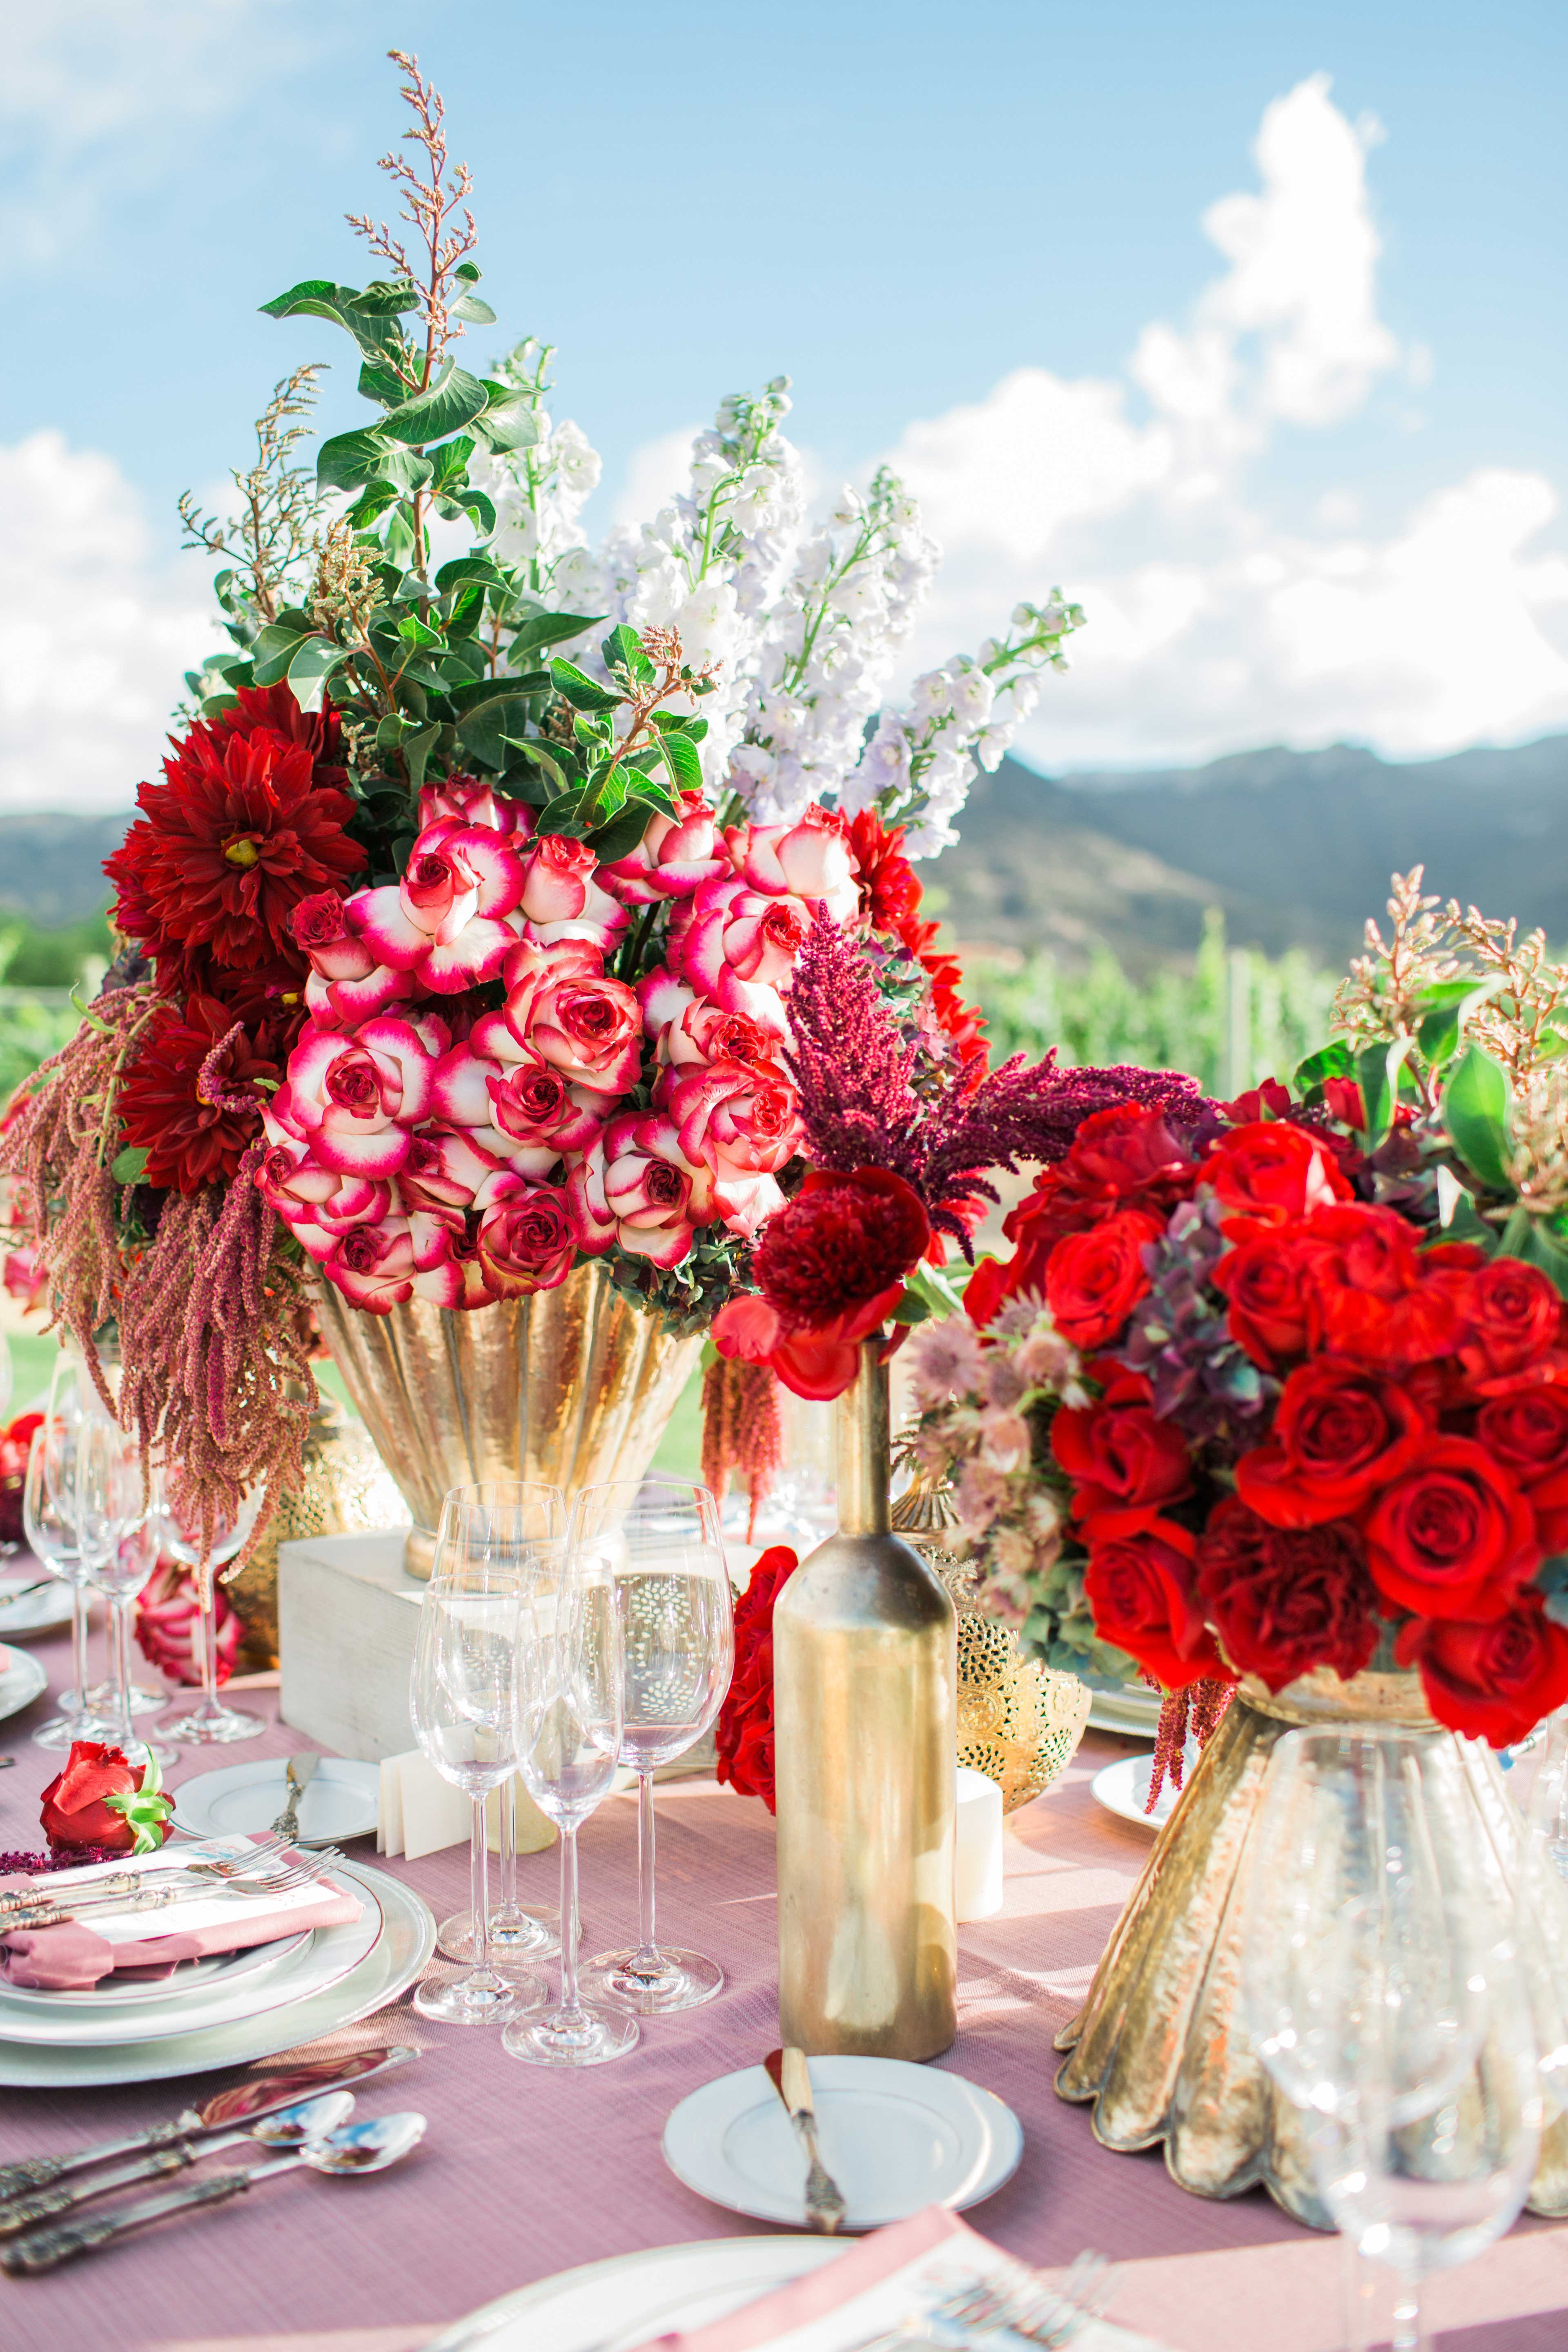 Red reception centerpieces at outdoor wedding